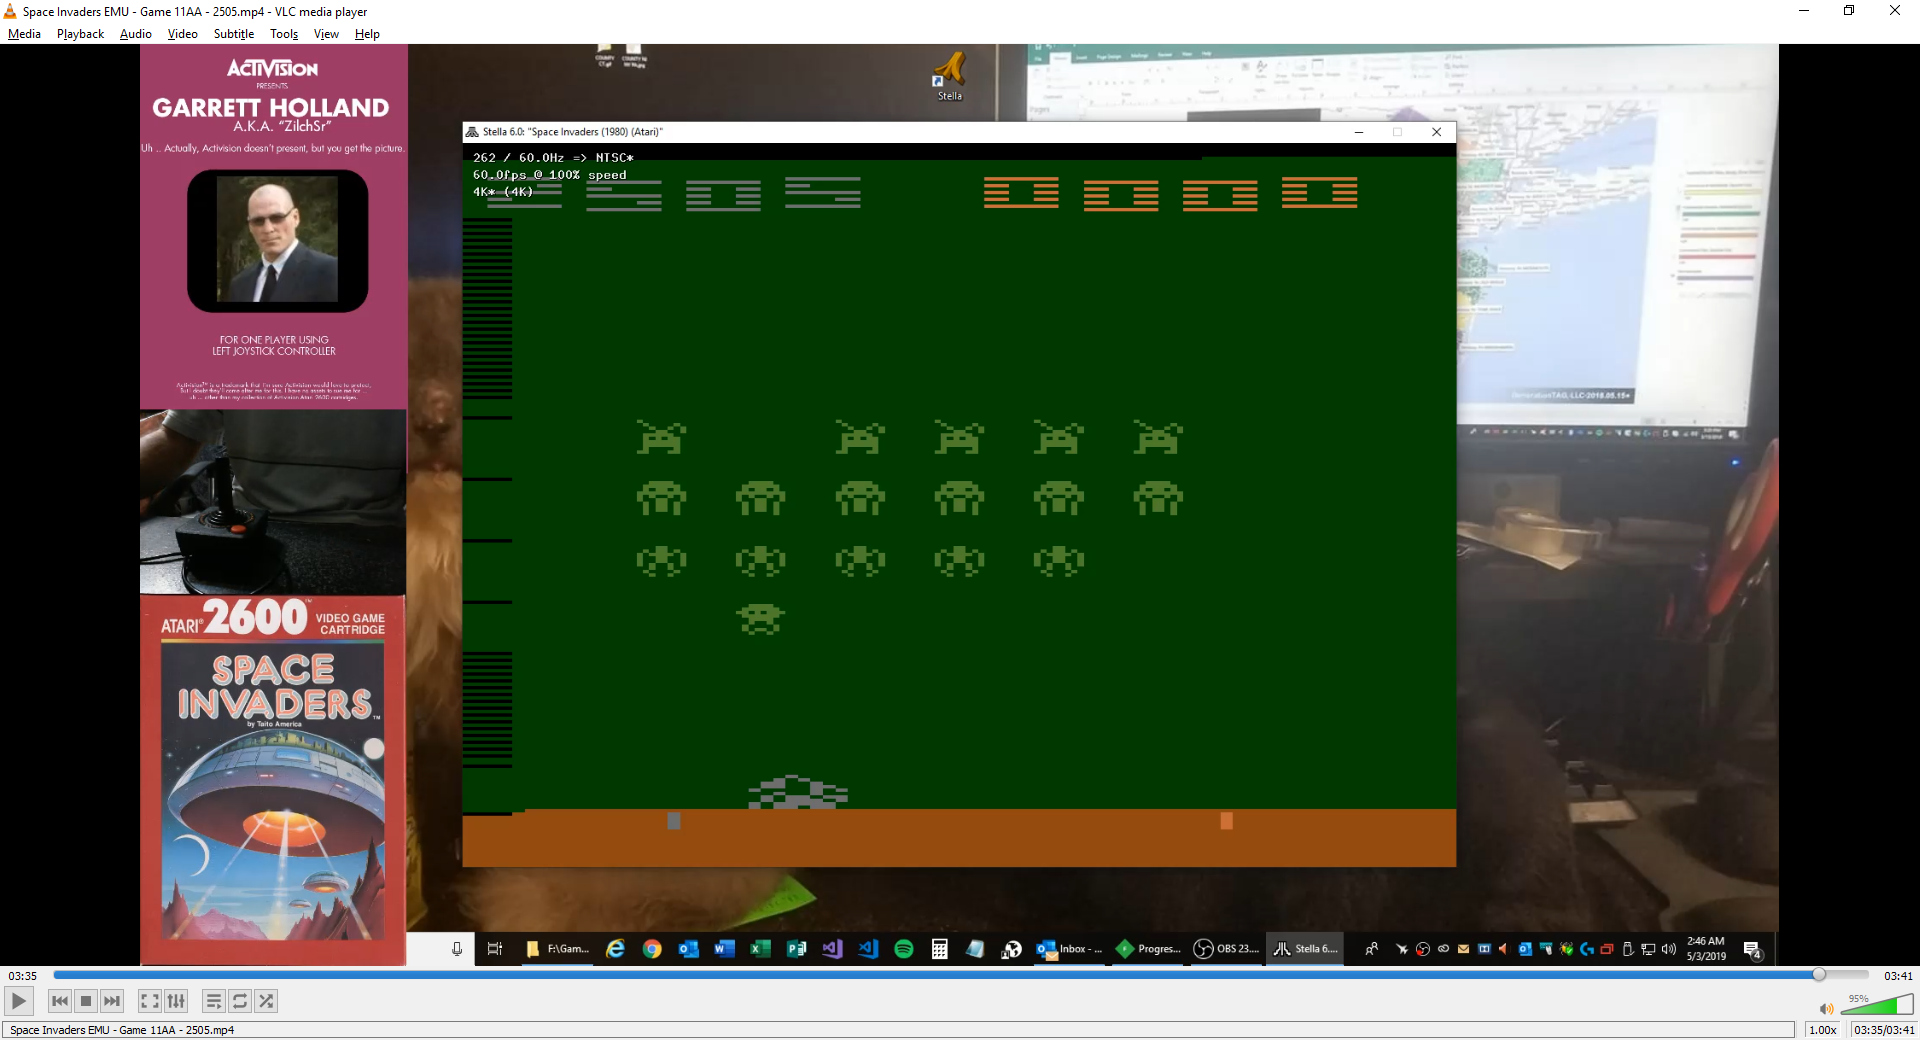 Space Invaders: Game 11 2,505 points